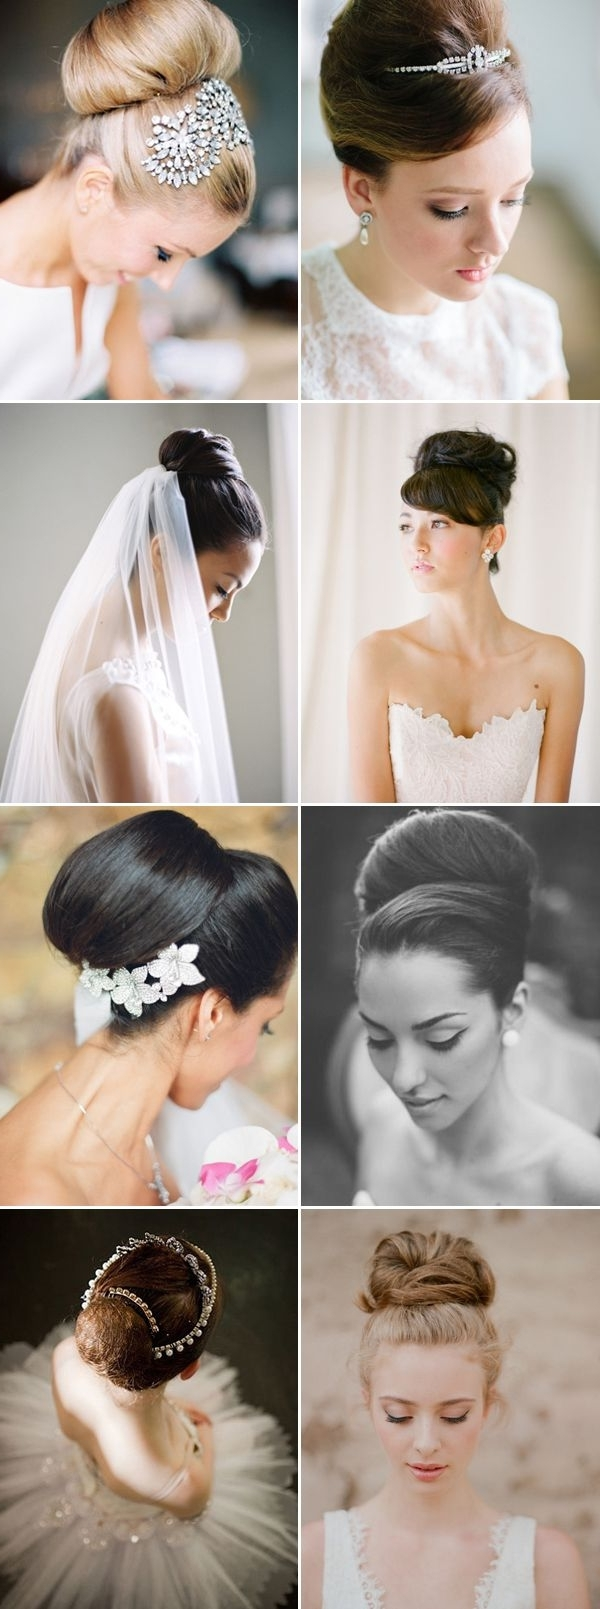 Audrey Hepburn Style Pertaining To Most Recent Audrey Hepburn Wedding Hairstyles (View 3 of 15)